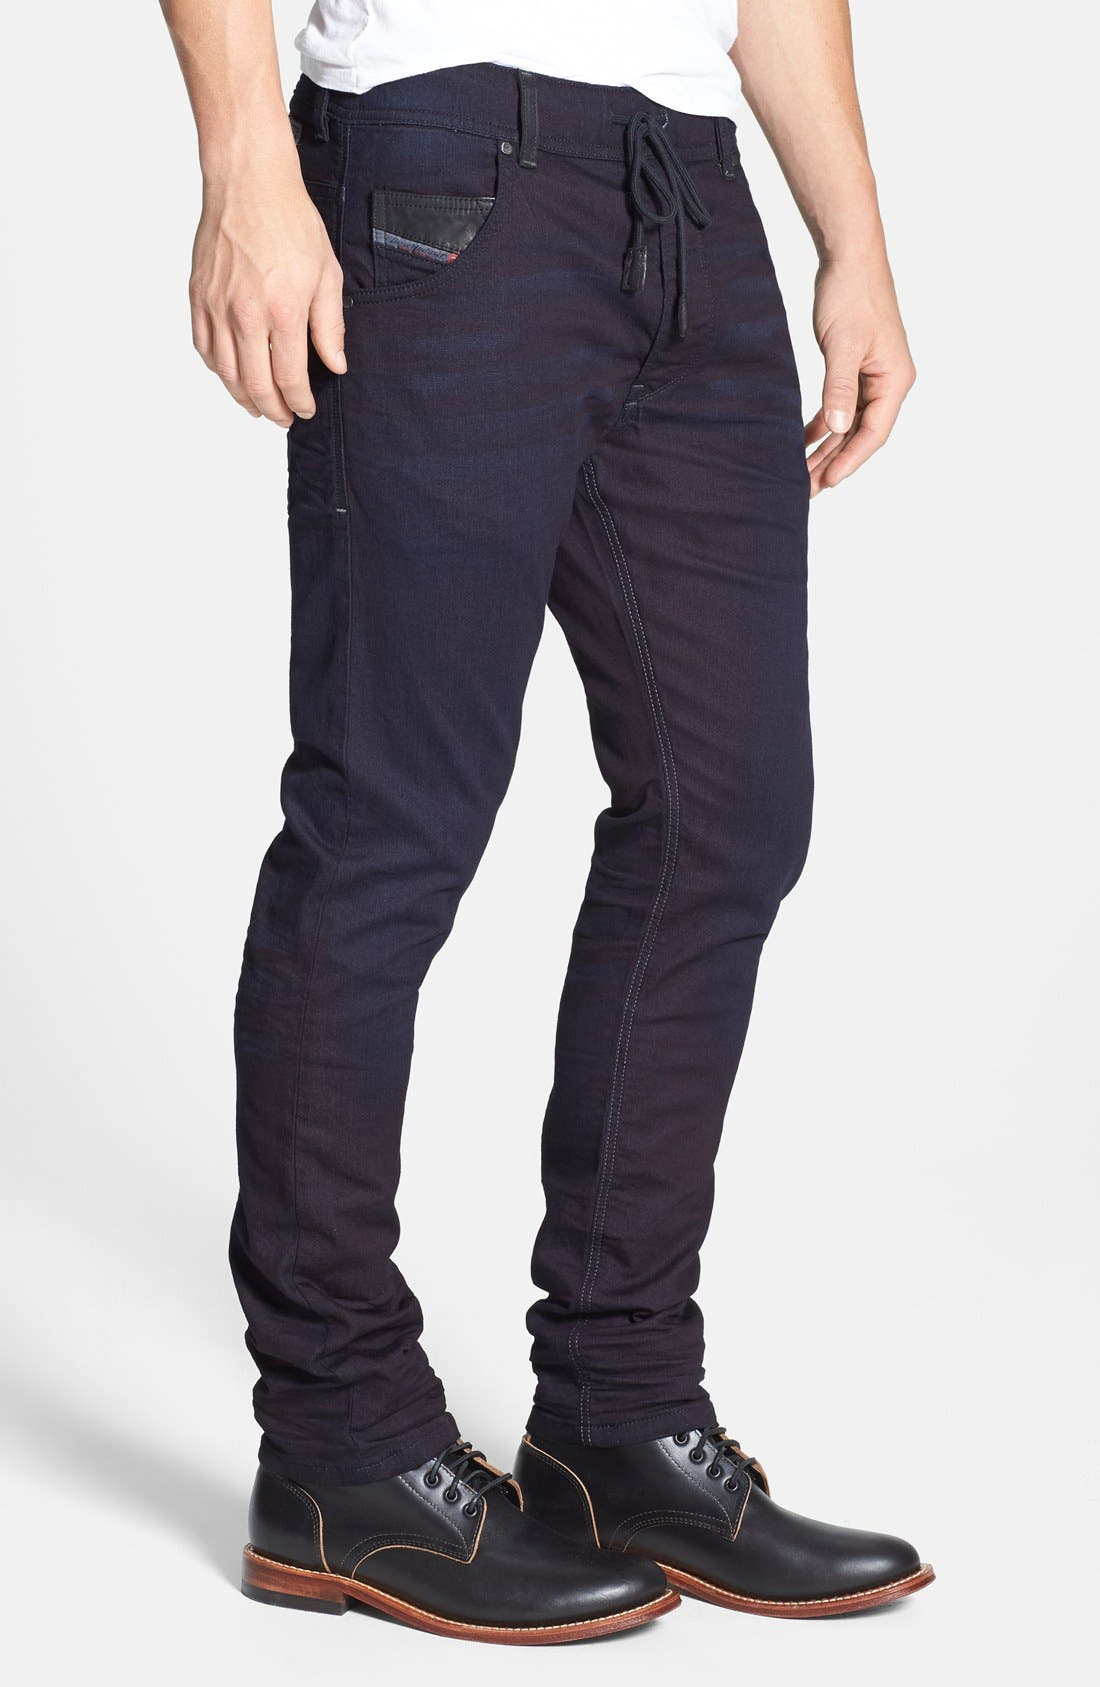 DIESEL<SUP>®</SUP>, Krooley Jogg Slouchy Skinny Fit Jeans, Alternate thumbnail 5, color, 0829P